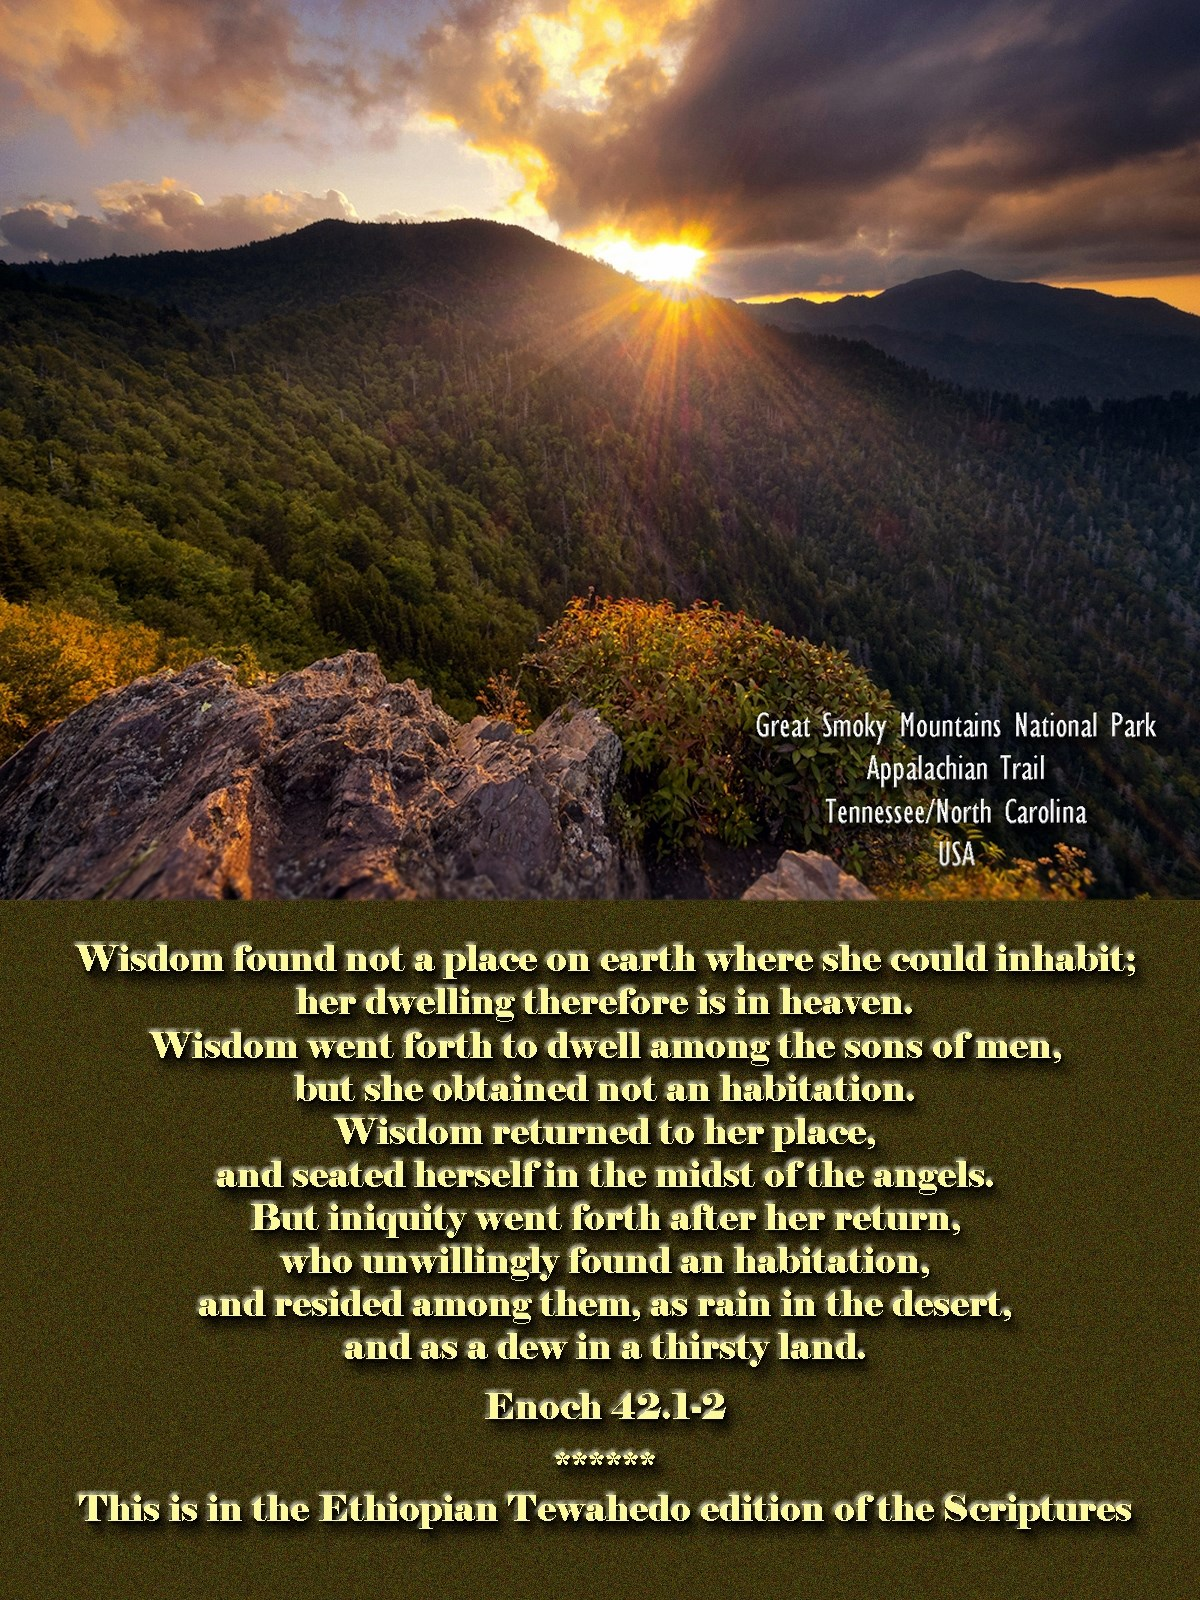 00 appalachin trail. great smoky mountains national park usa. book of enoch. 270815